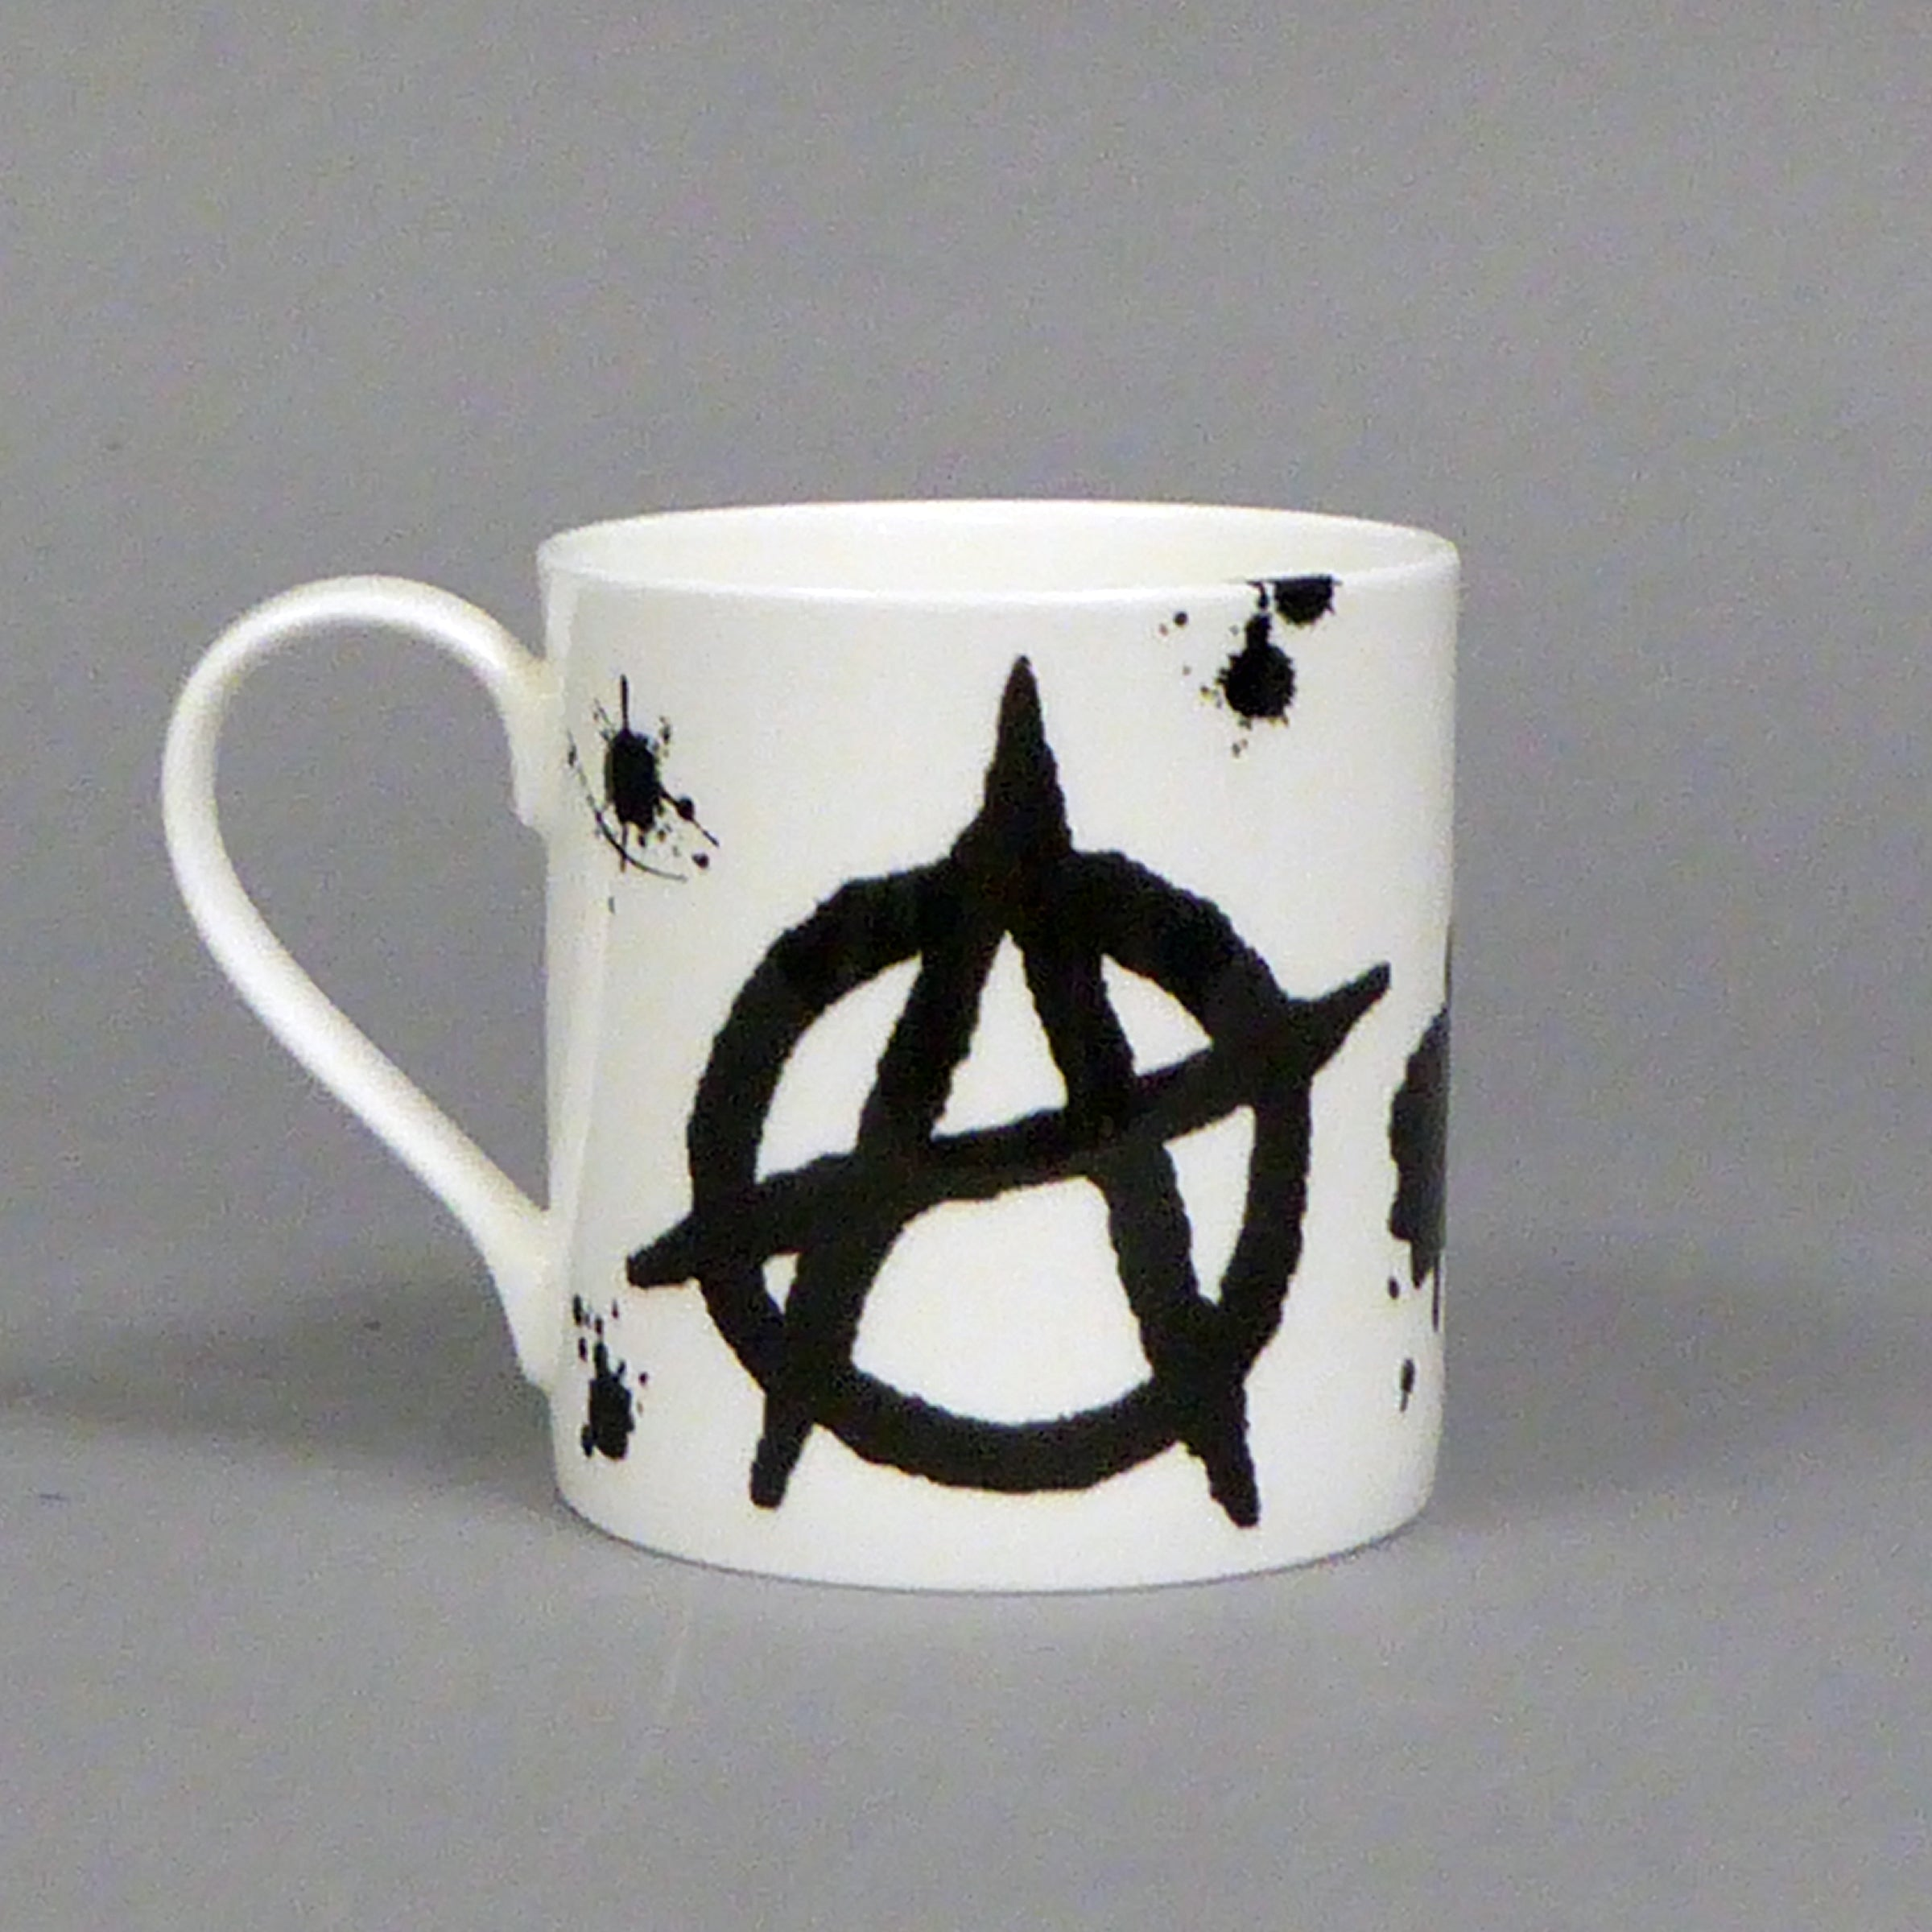 All proper tea is theft Mug